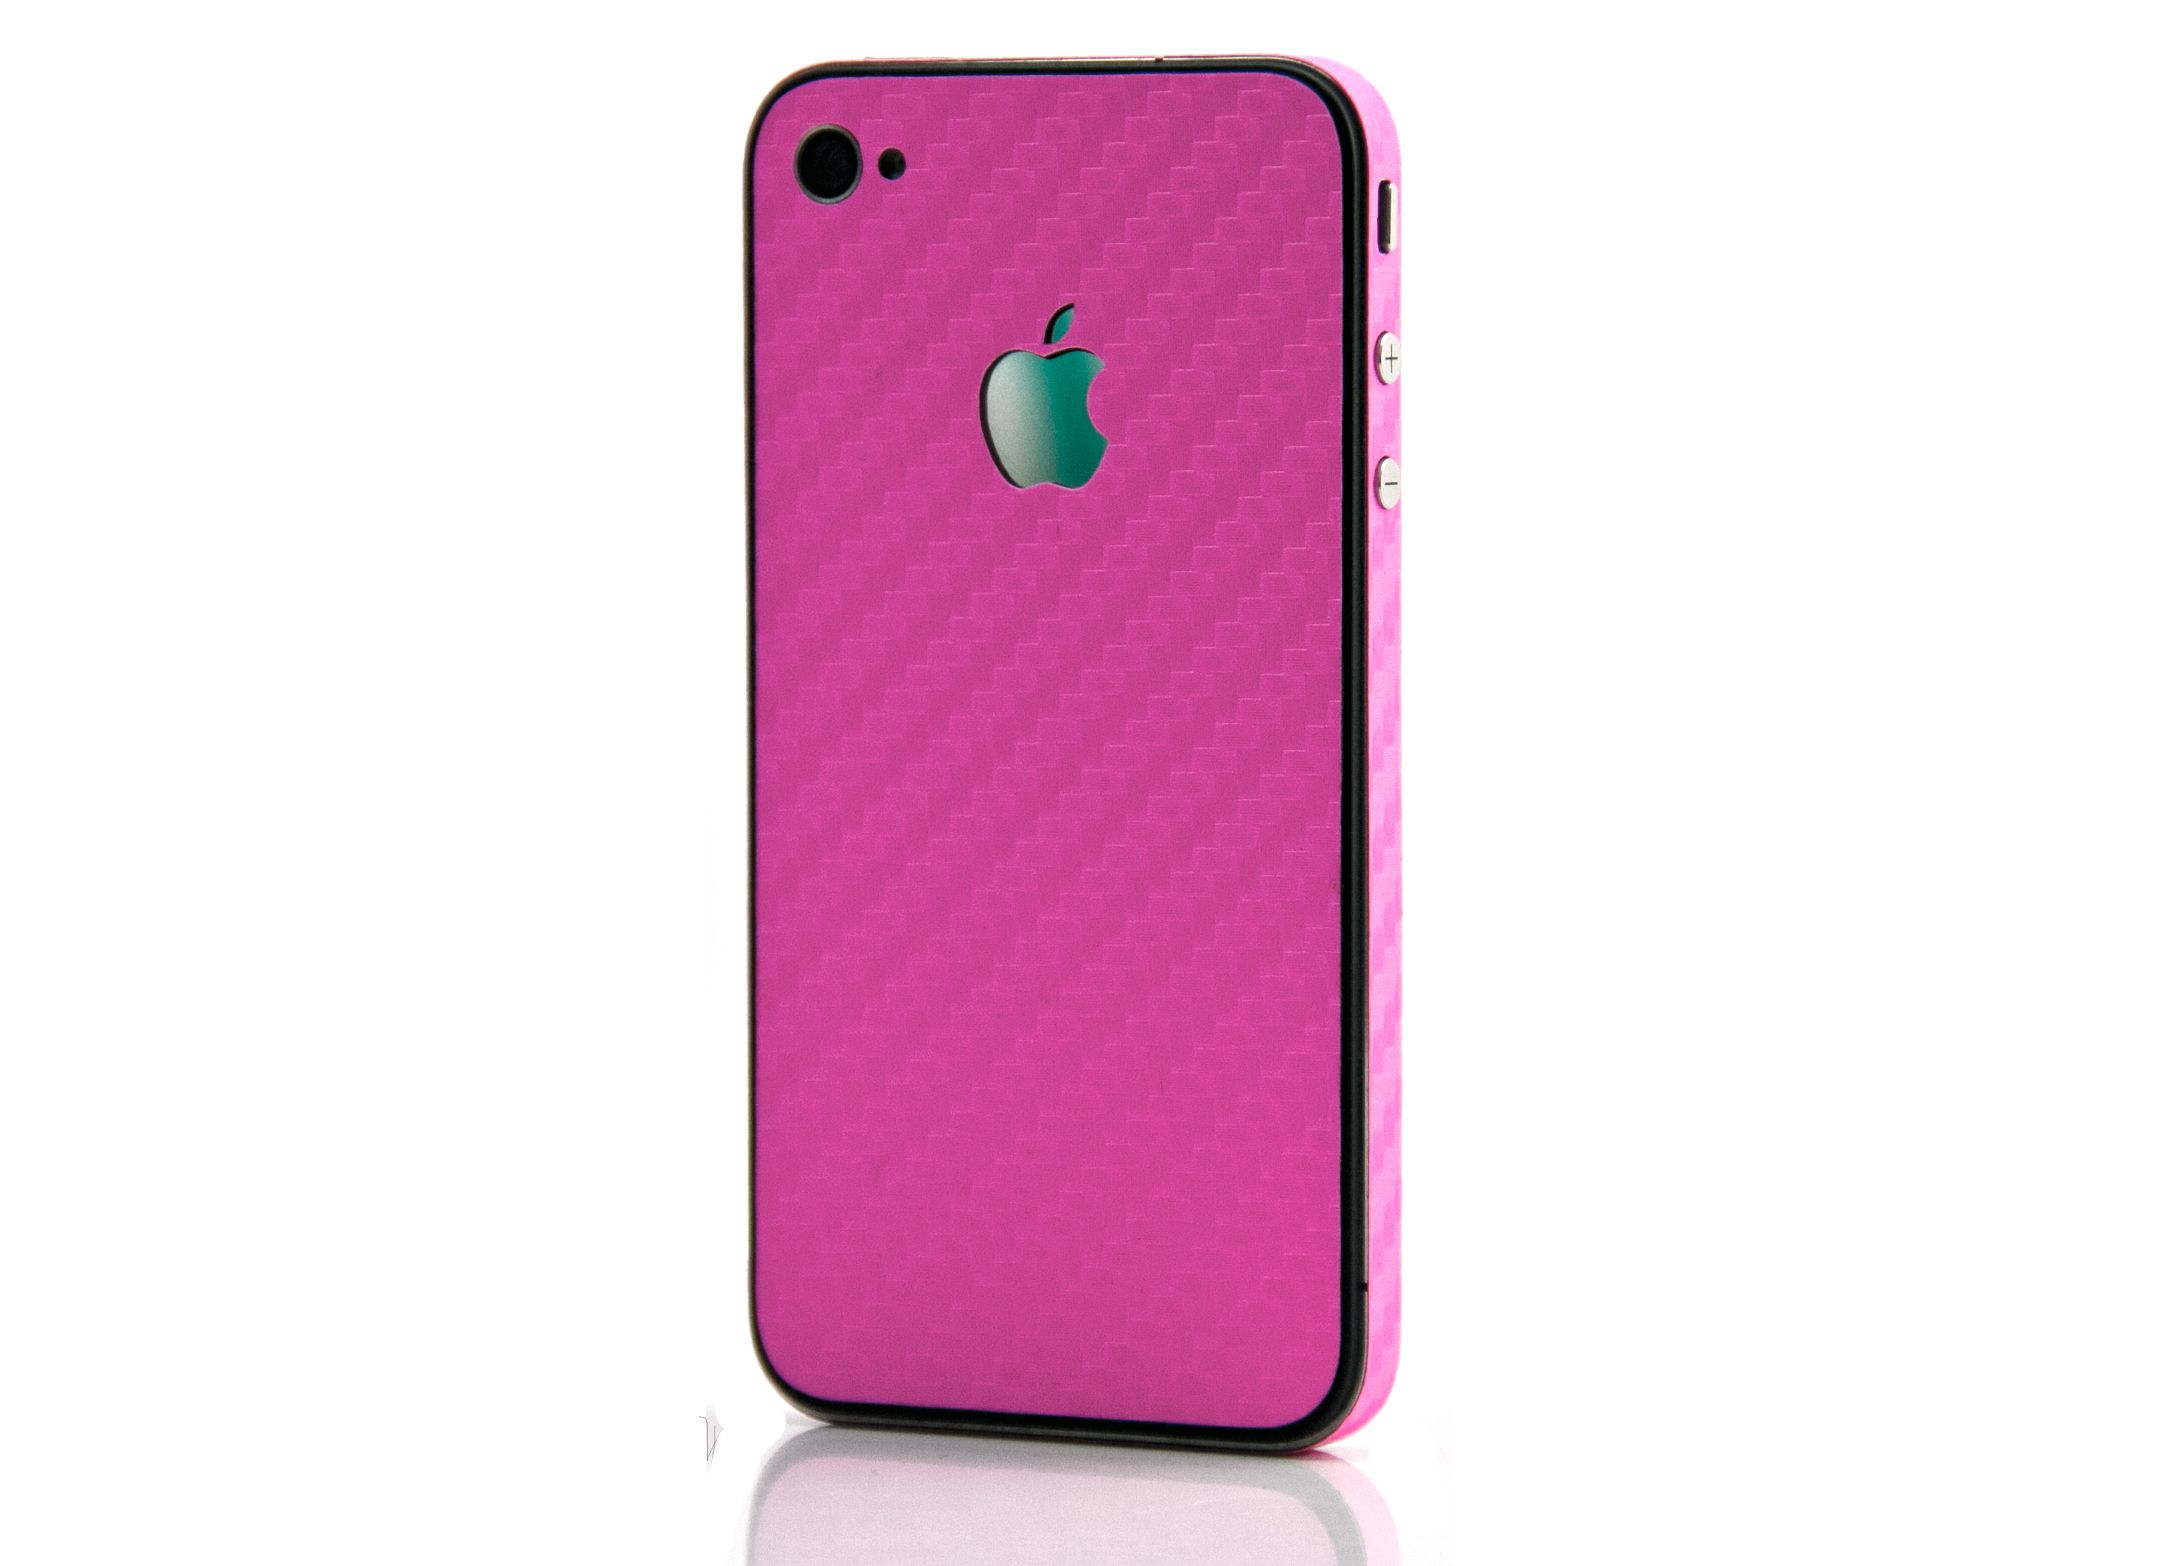 Our Carbon Fiber wrap adds style and protection to your iPhone! Available in a variety of colors.